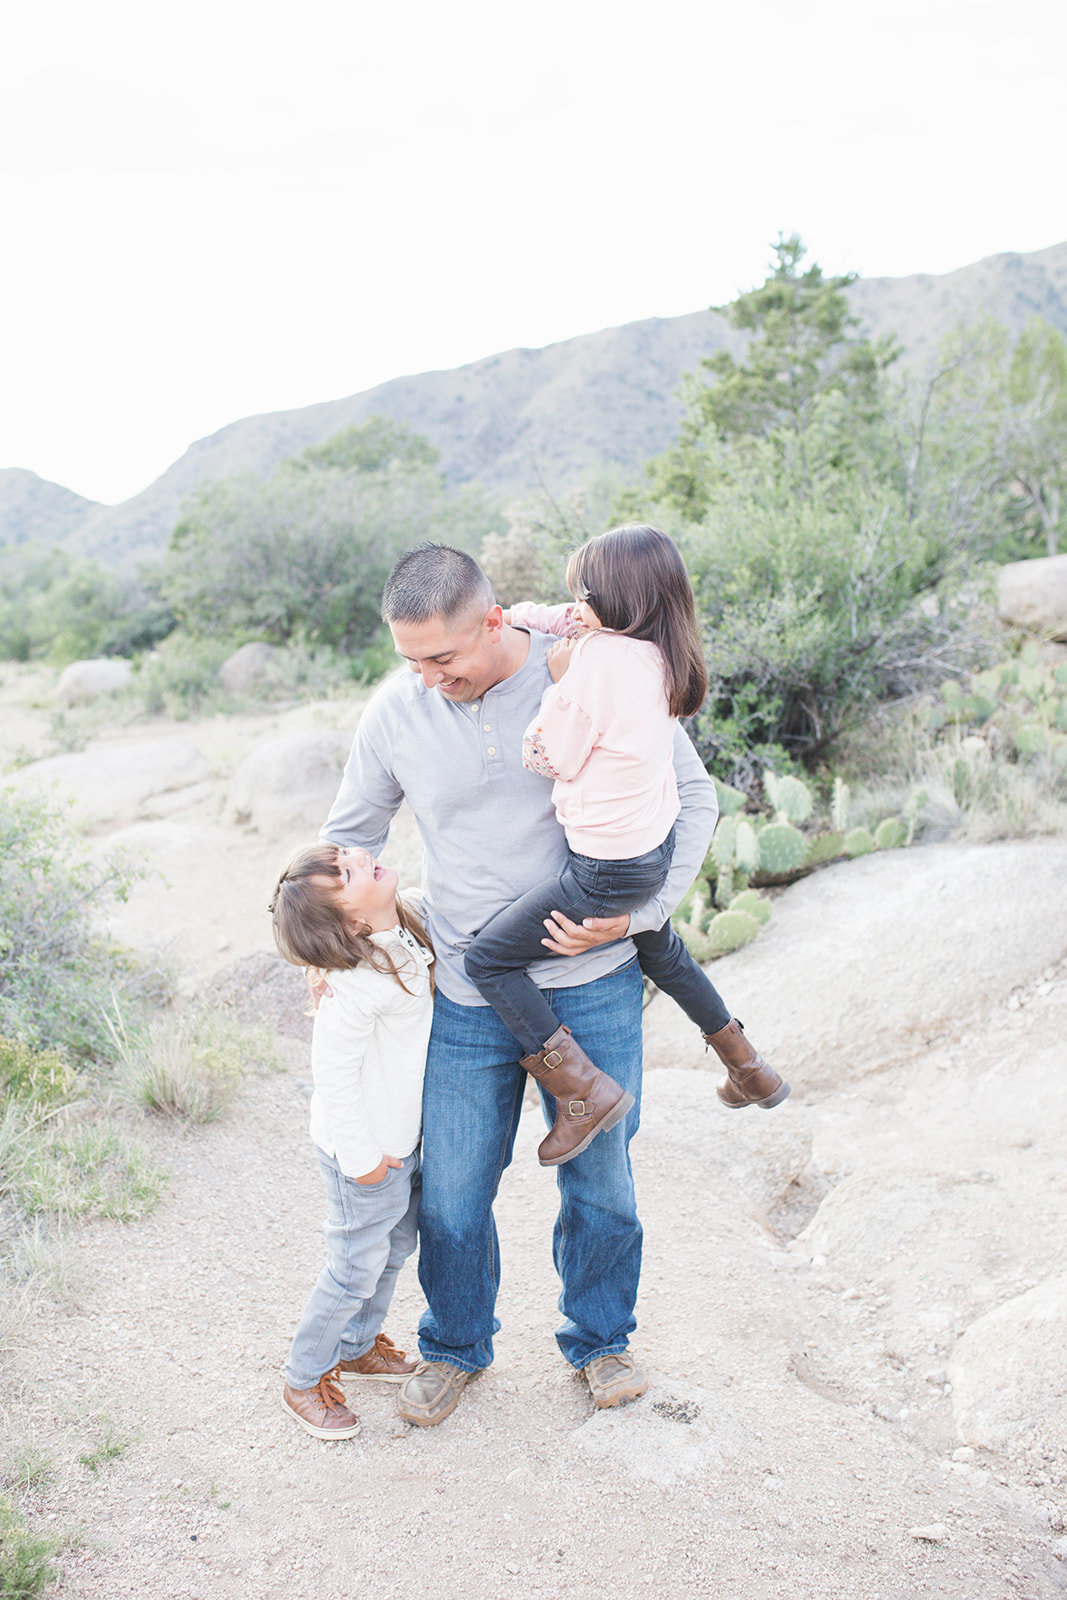 Albuquerque Outdoors Family Photographer_www.tylerbrooke.com_Kate Kauffman_007